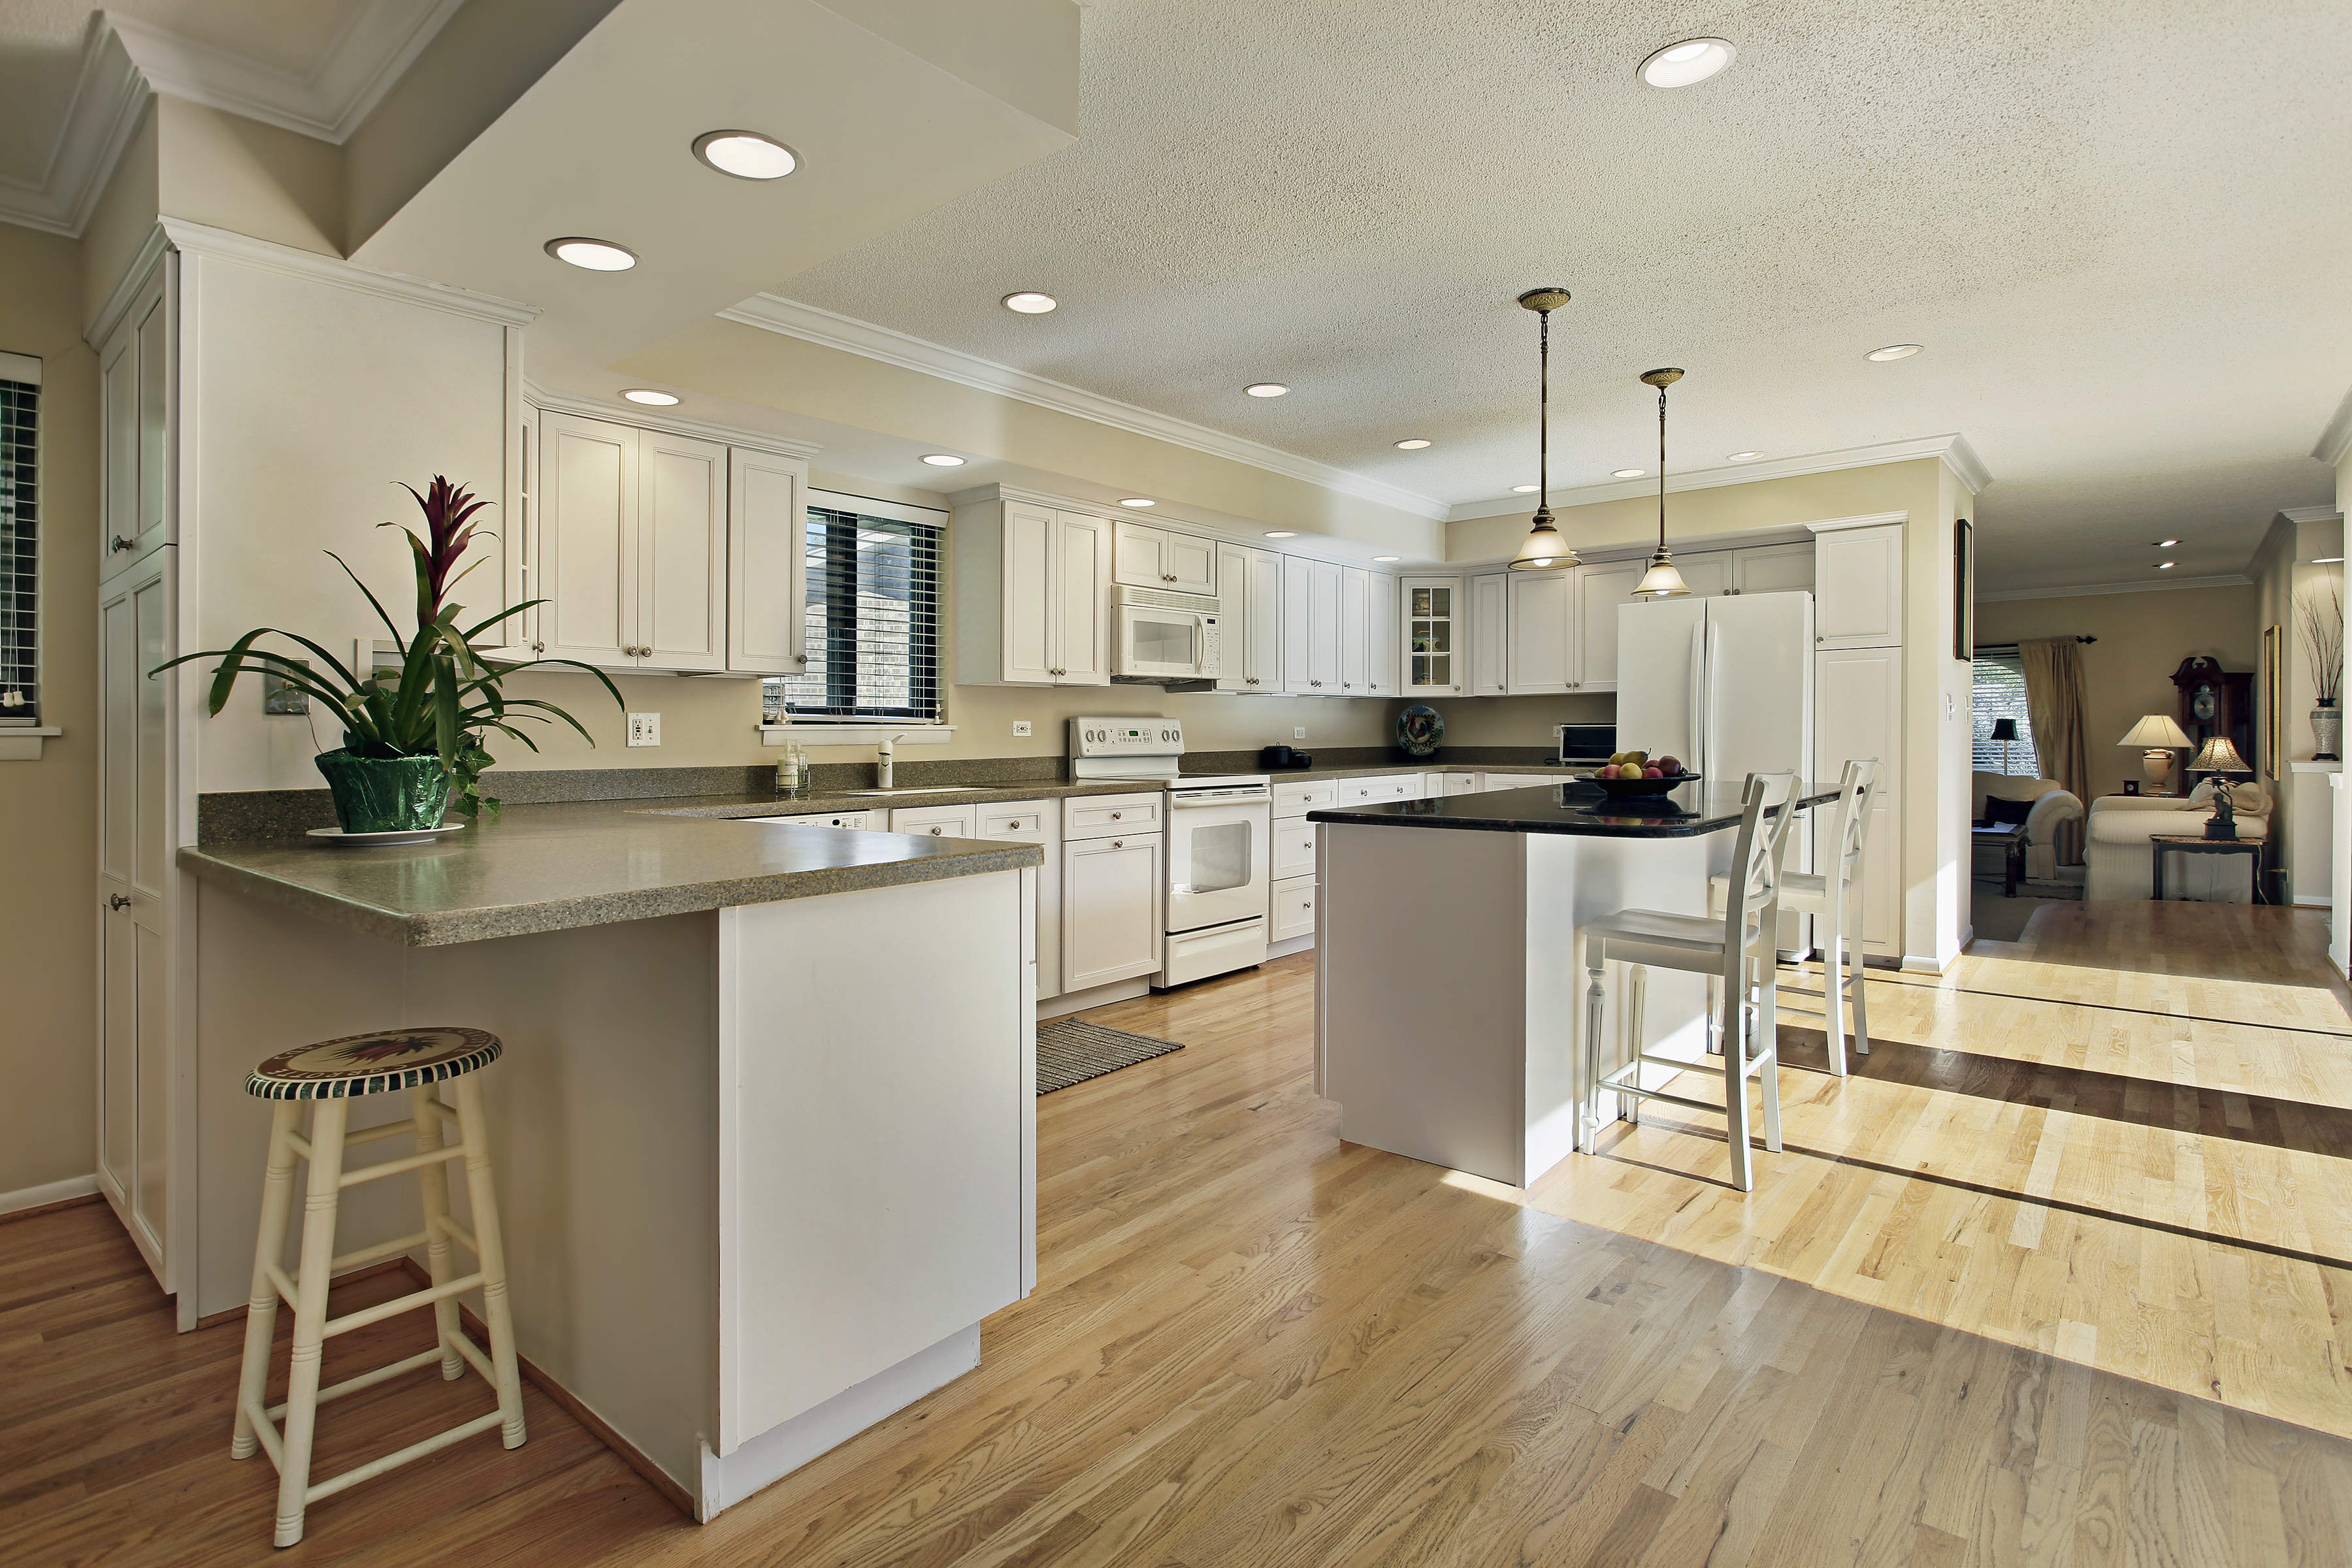 kitchen design with wood floors can i install a wooden floor in my kitchen the wood floo 472